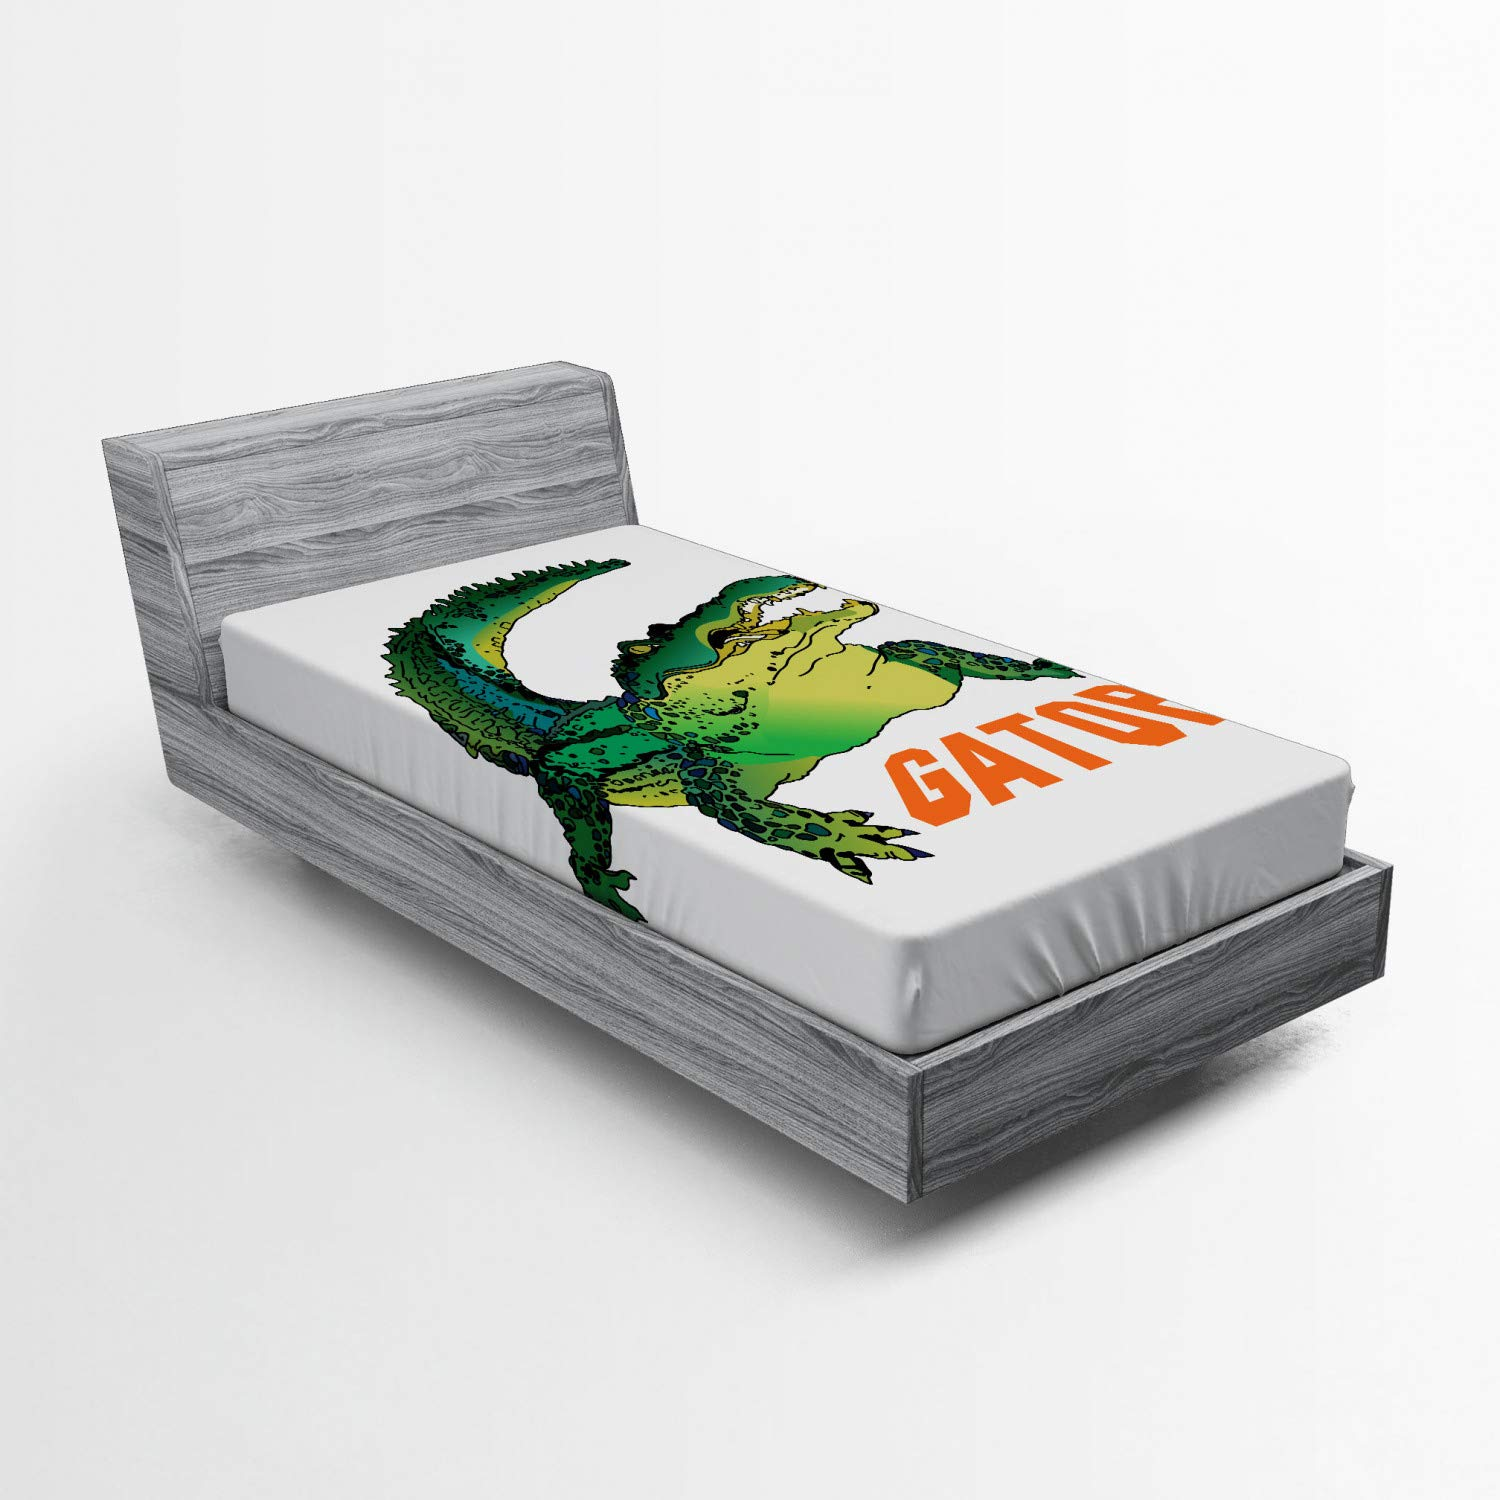 Ambesonne Reptile Fitted Sheet, Grumpy Alligator Has a Word Gator Crocodile Humor Wild Life Safari Aquatic, Bed Cover with All-Round Elastic Deep Pocket for Comfort, Twin XL Size, Green Orange White